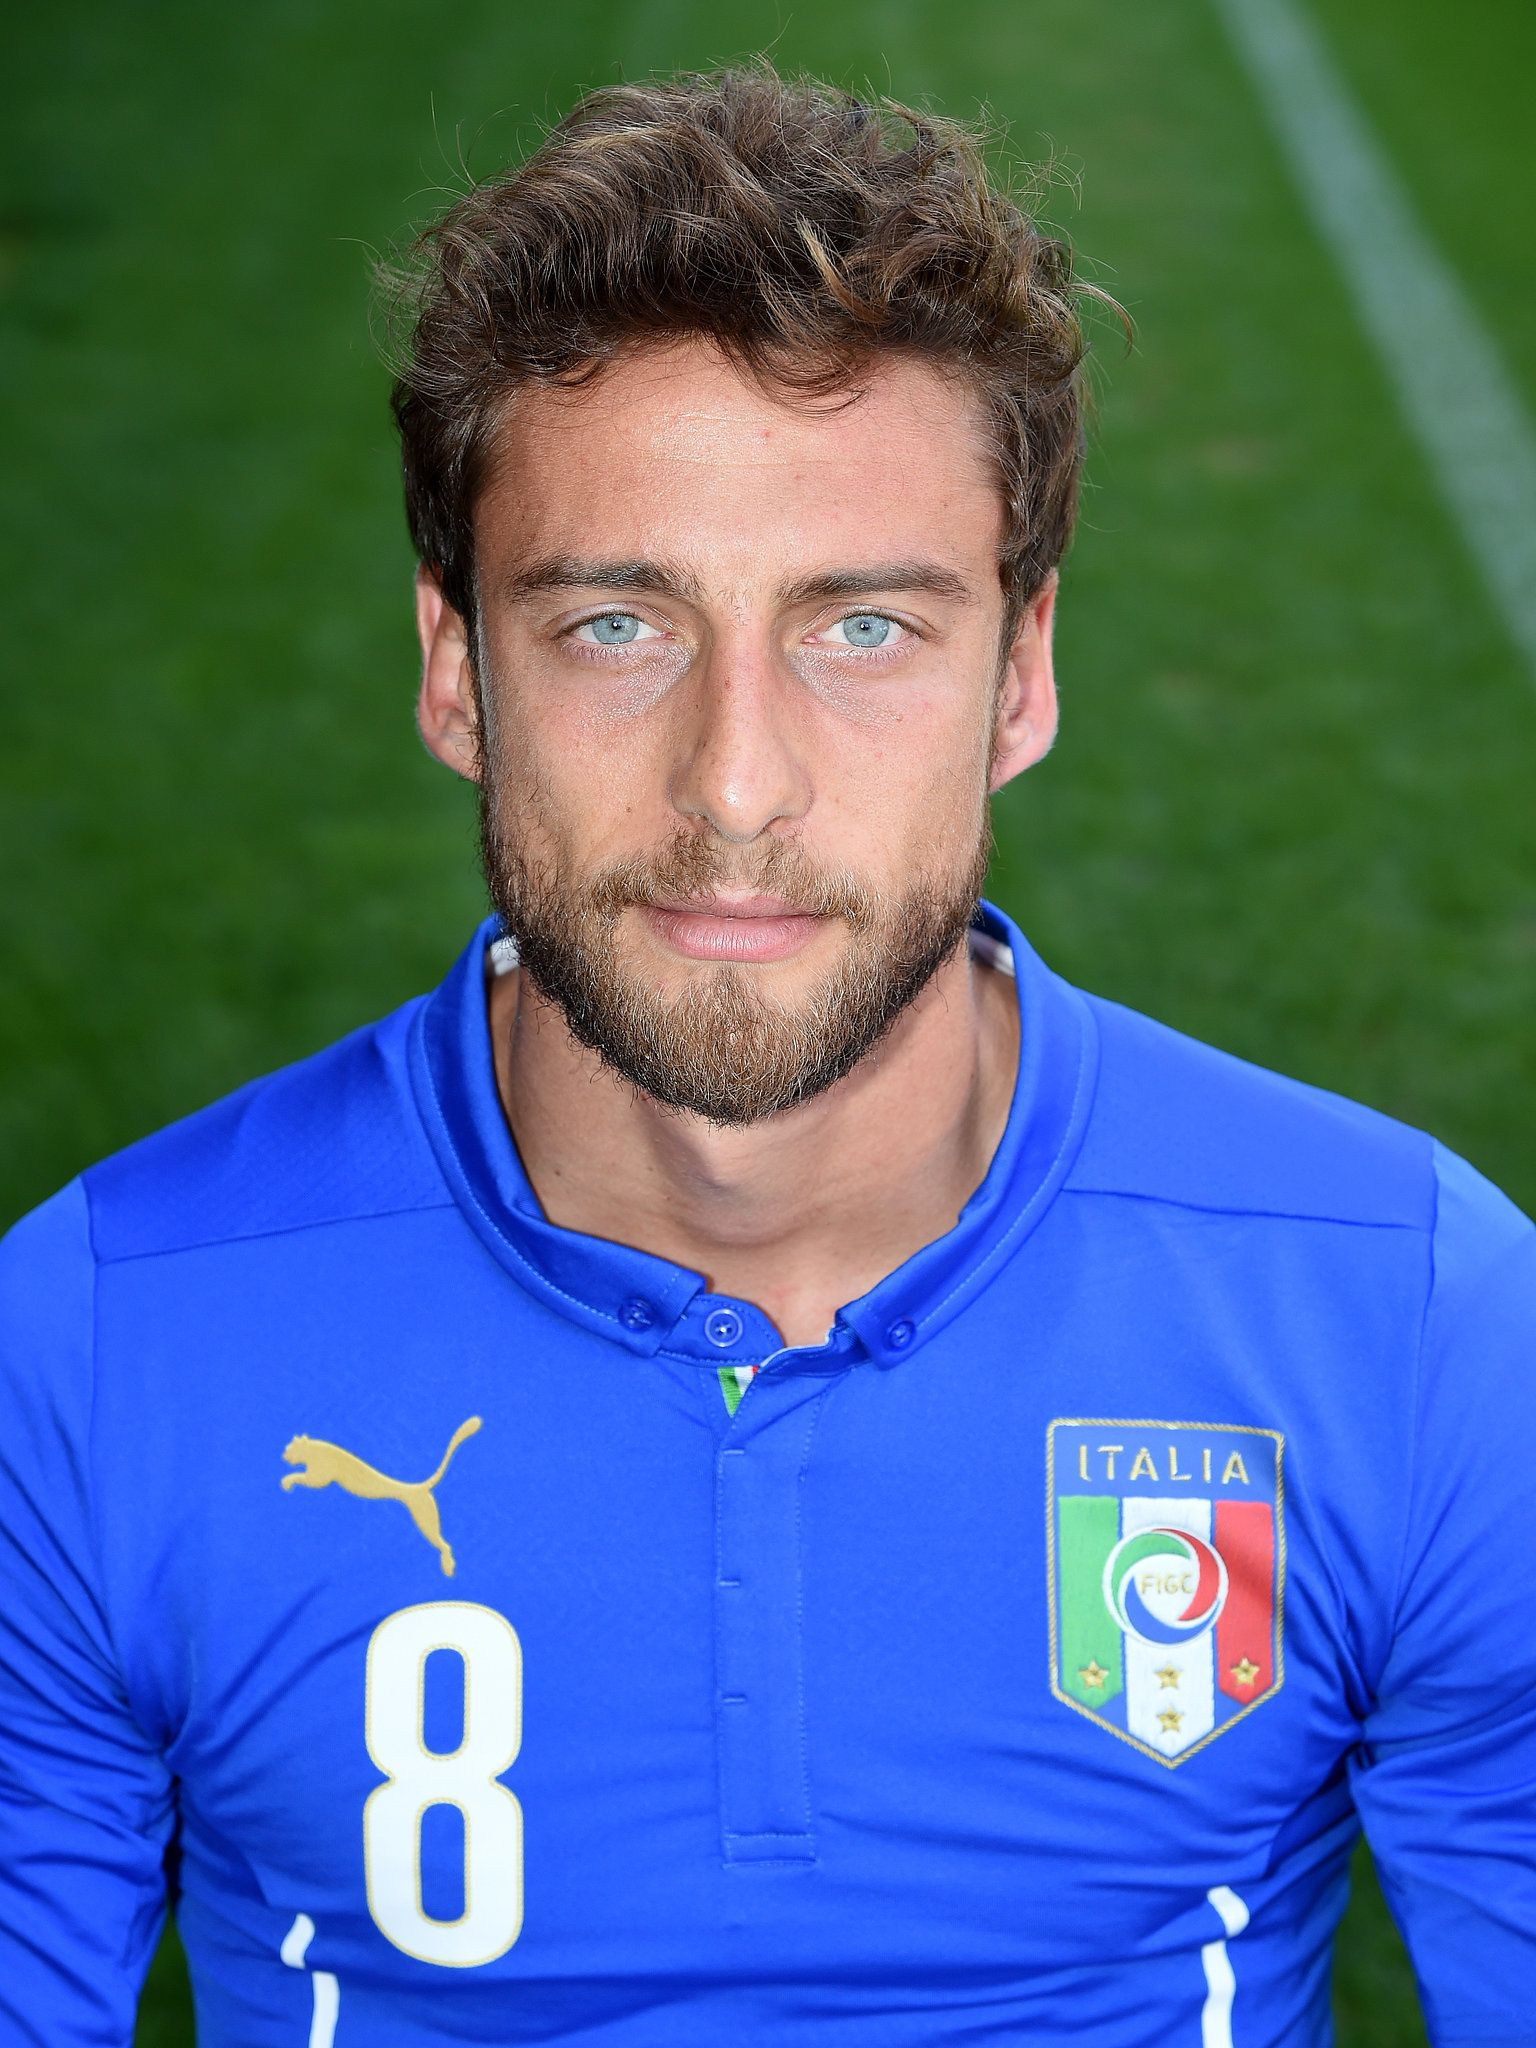 Claudio Marchisio Italy Bearded Men Hot Soccer Players Haircuts Claudio Marchisio